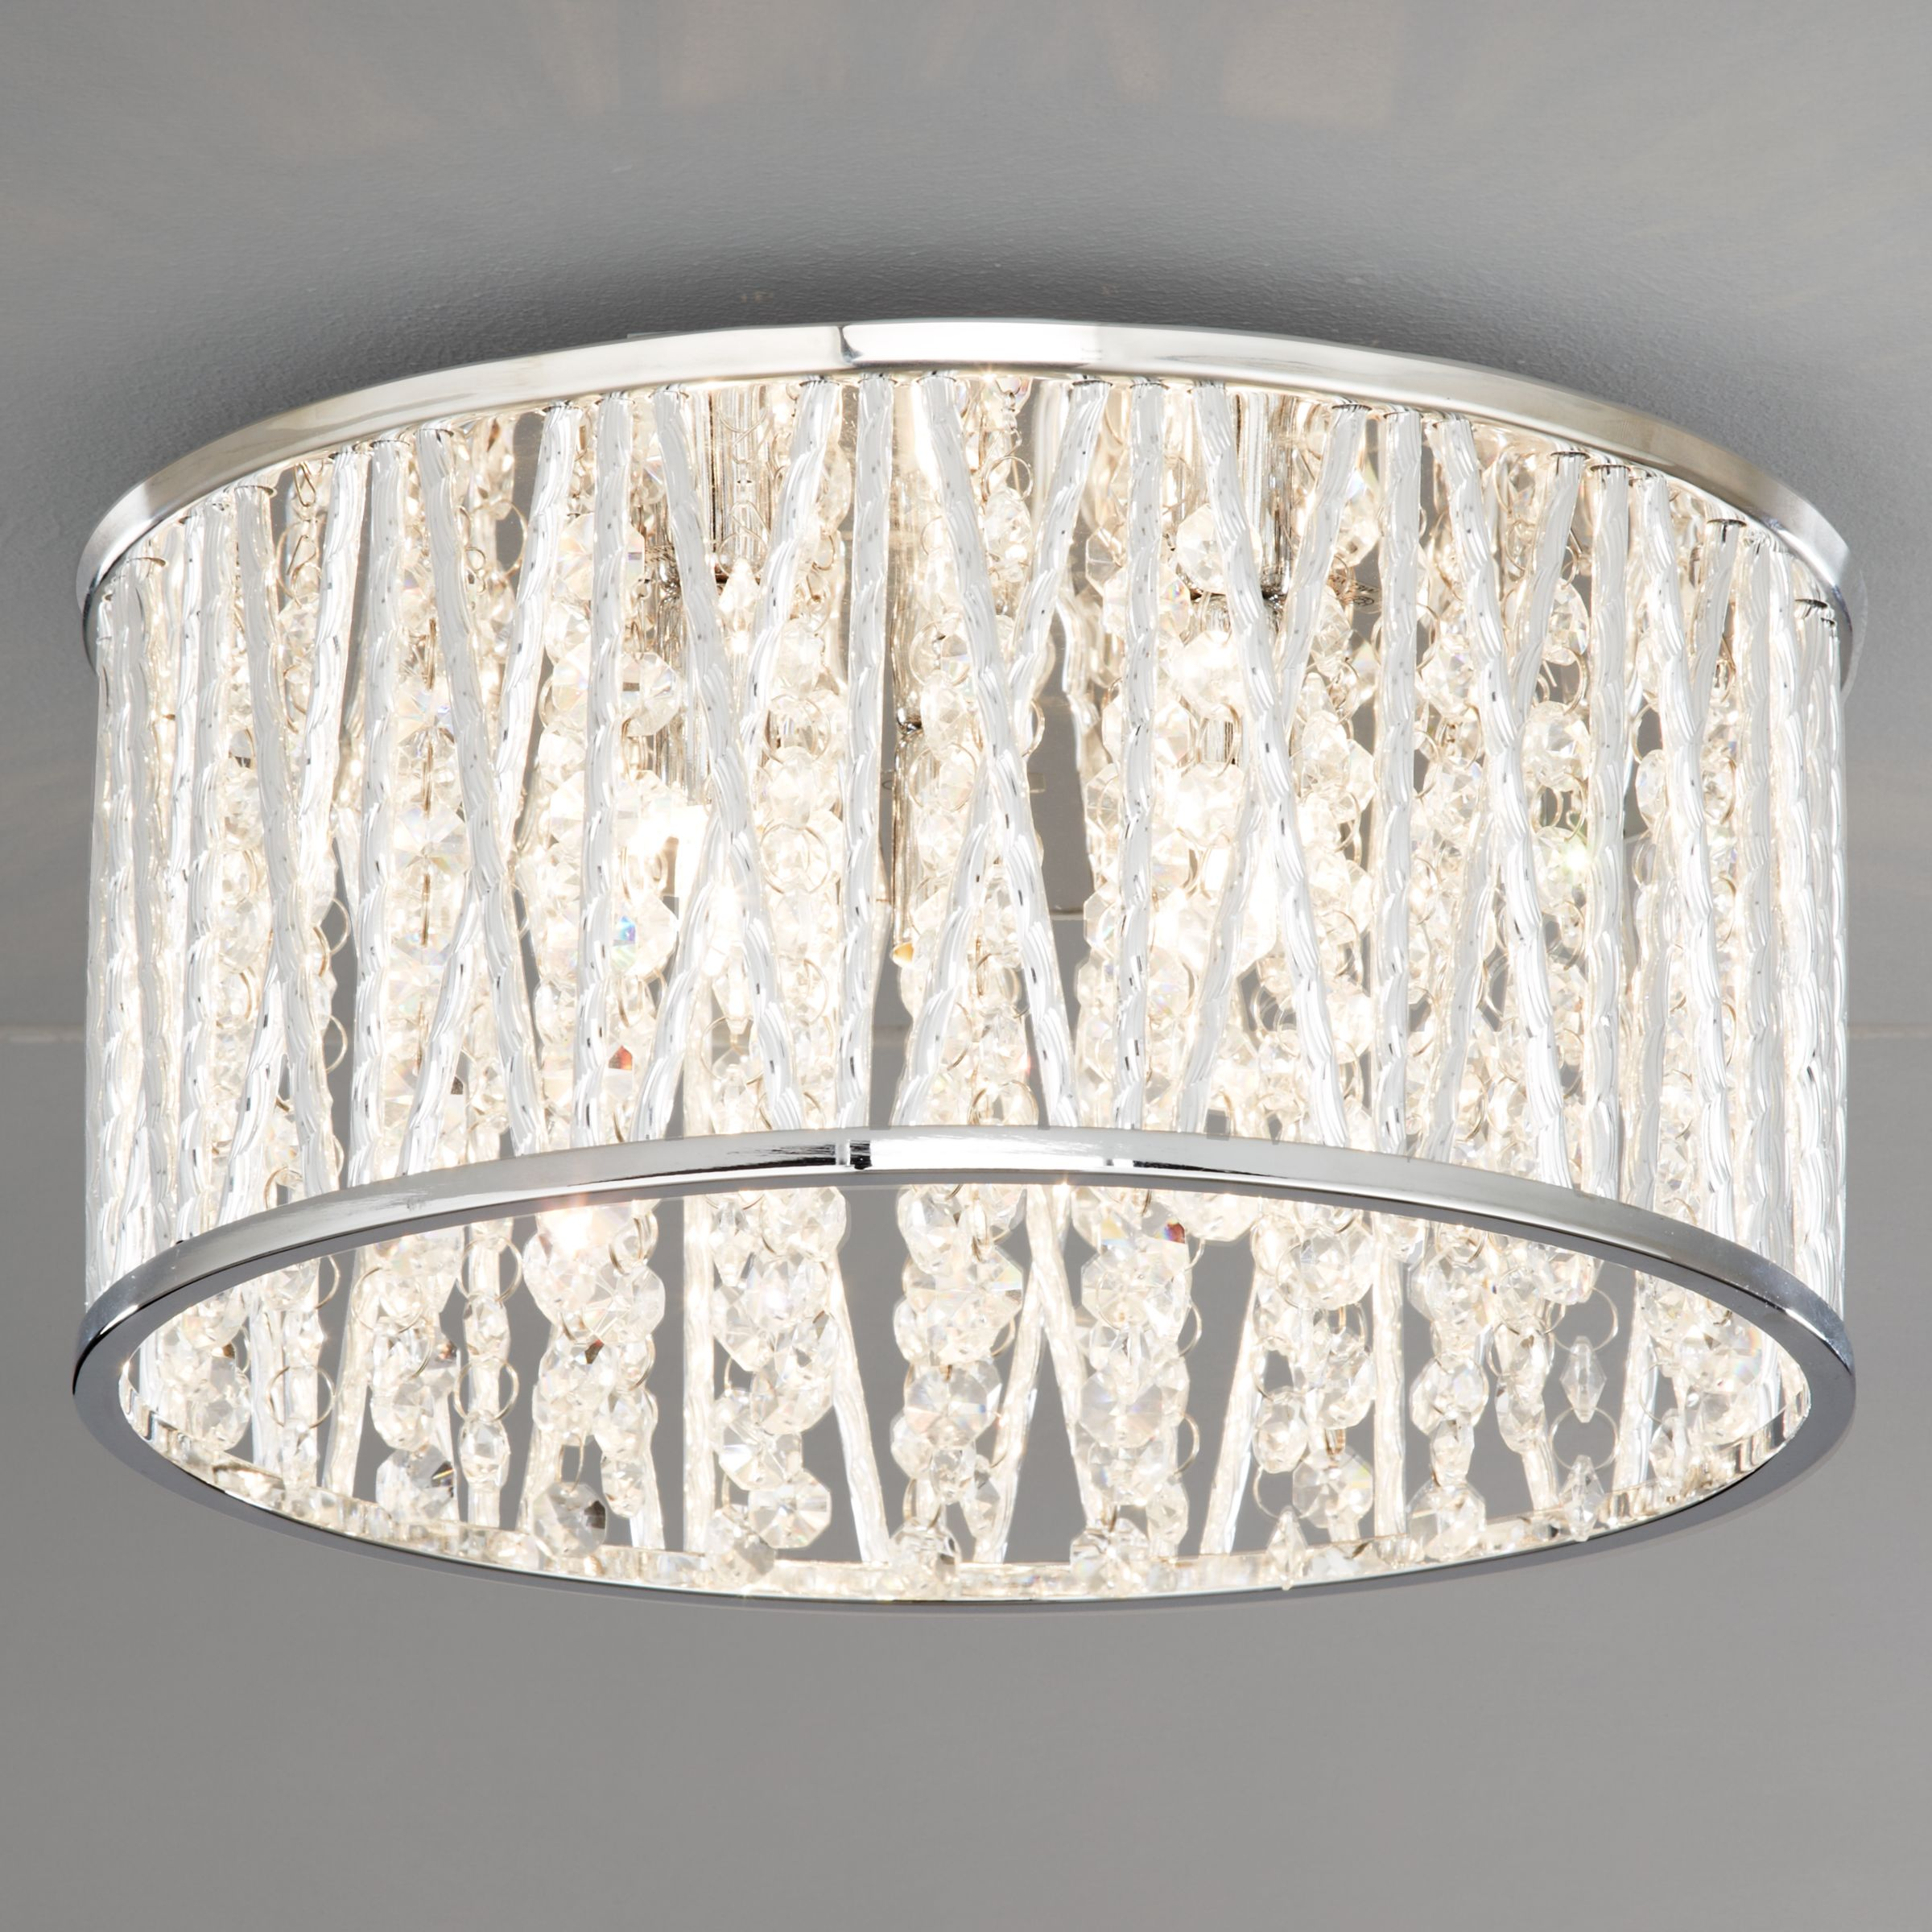 Ceiling Light Fittings At John Lewis : John lewis emilia crystal drum flush ceiling light